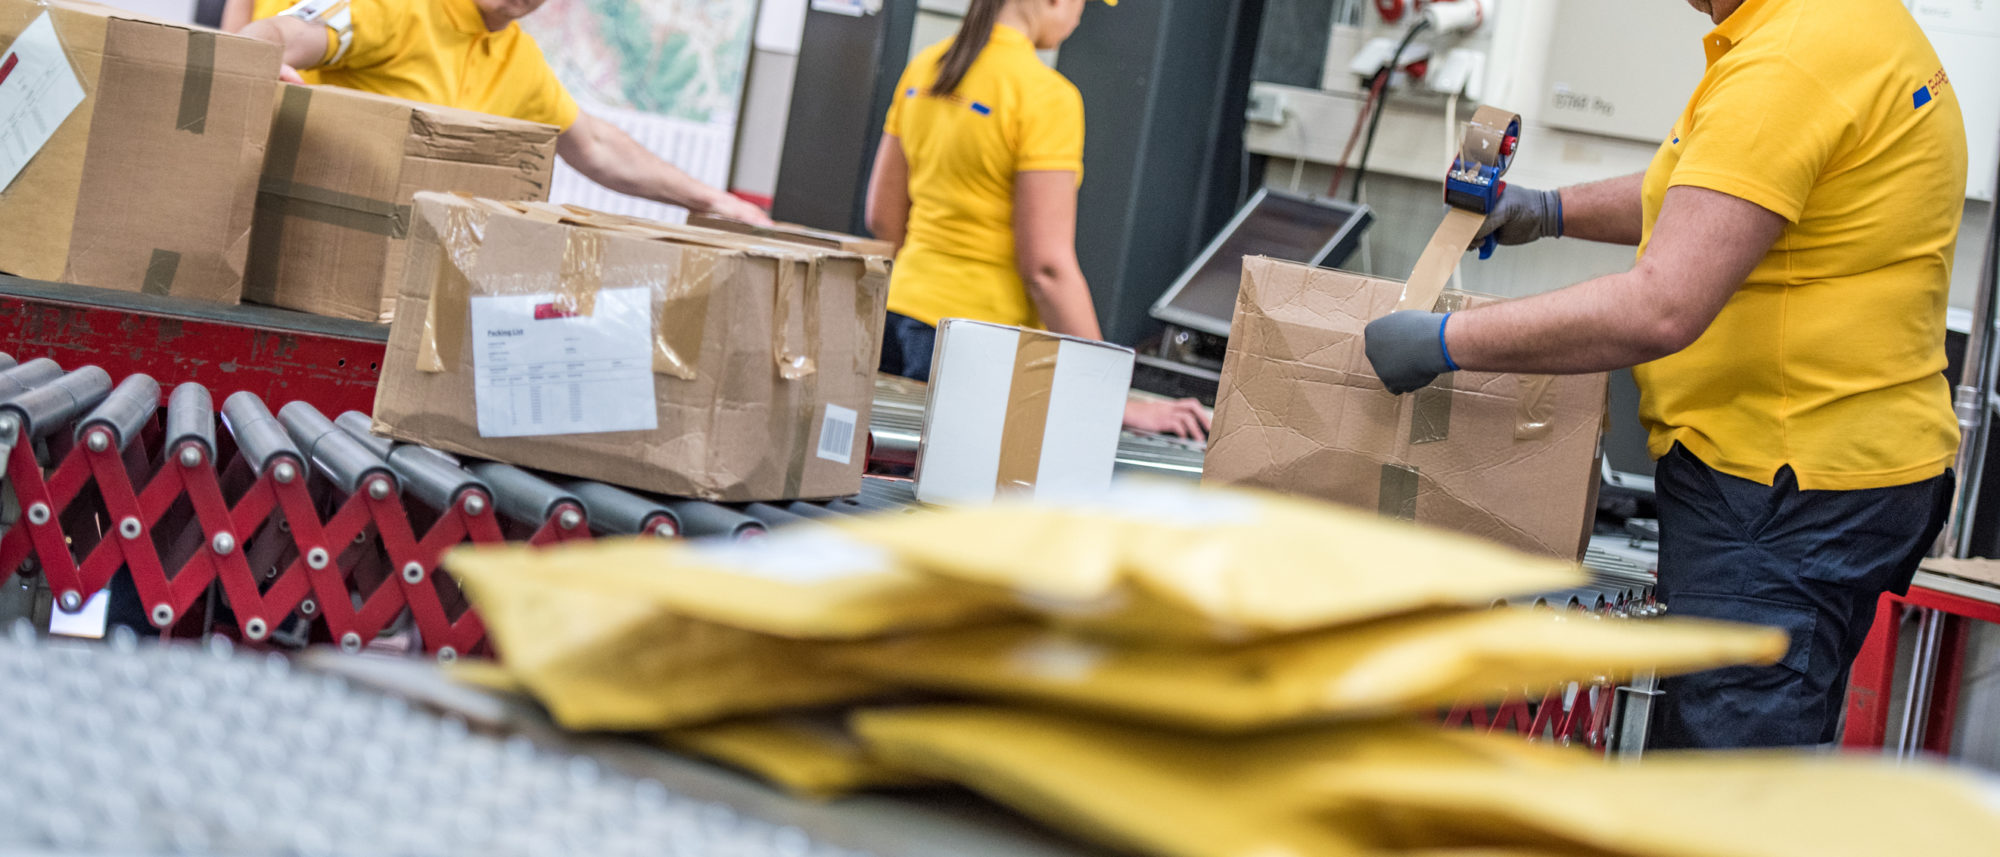 Group of postal workers in yellow uniforms handling boxes on a conveyor belt in a warehouse.